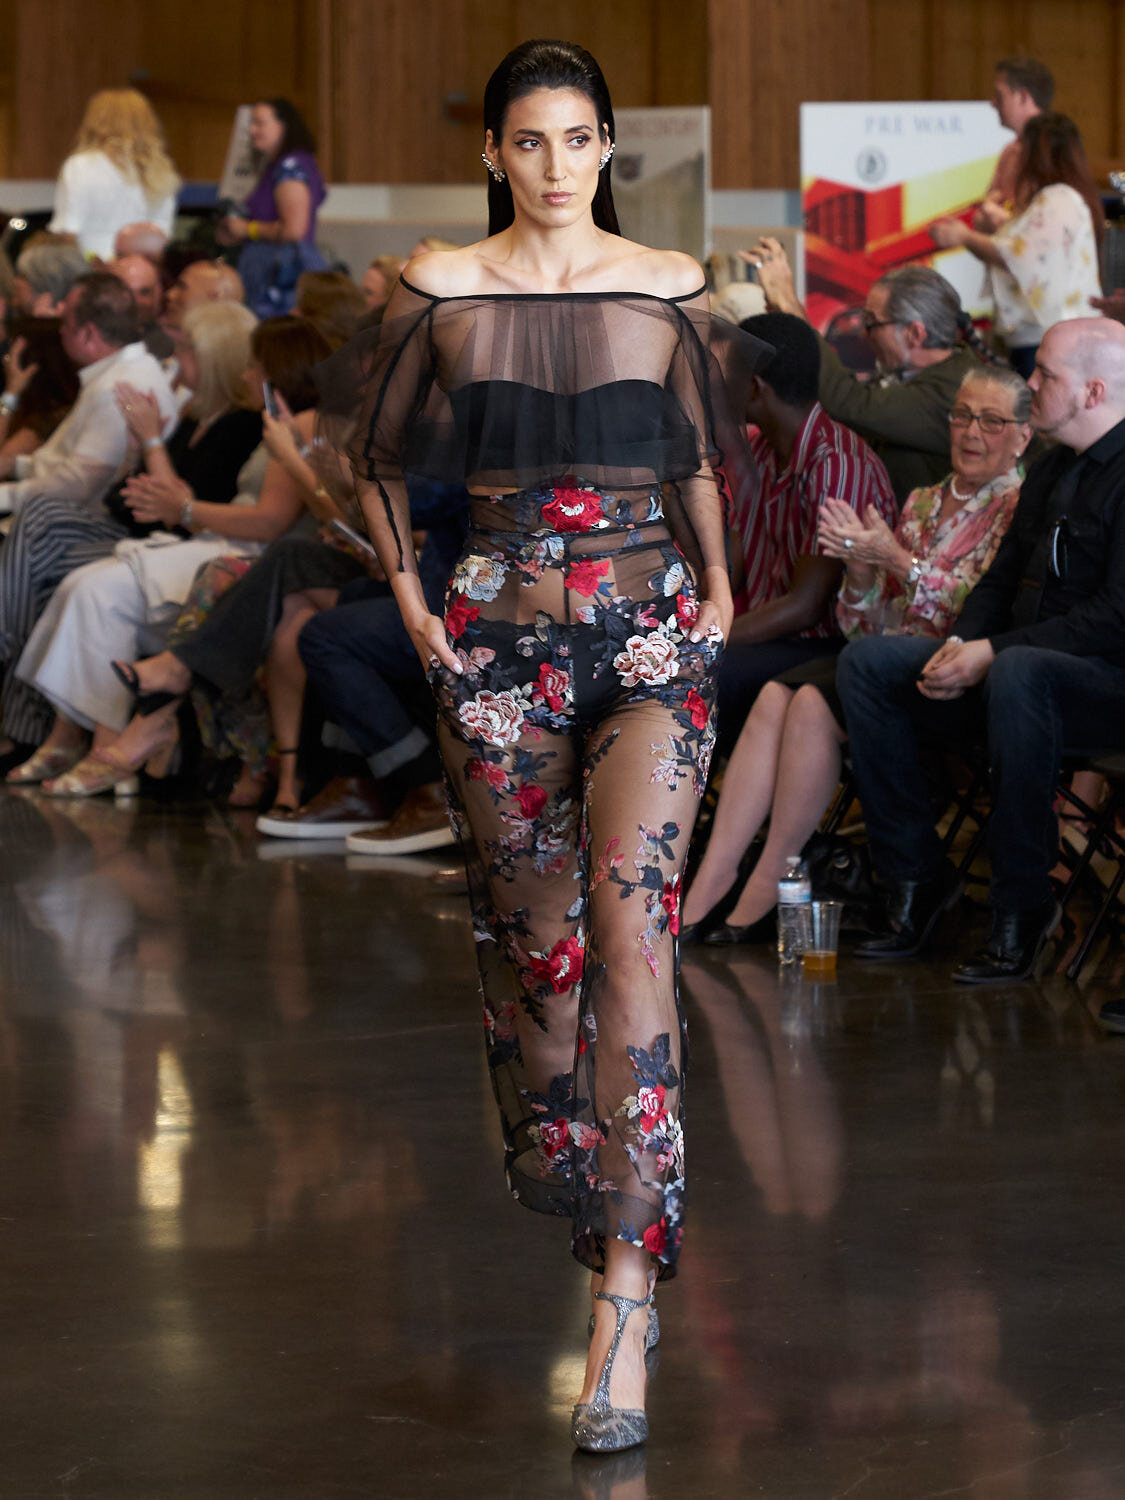 AMVISUALS-Couture-Cars-Fashion-Show-LeMay-Museum-Tacoma-Fashion-1.jpg